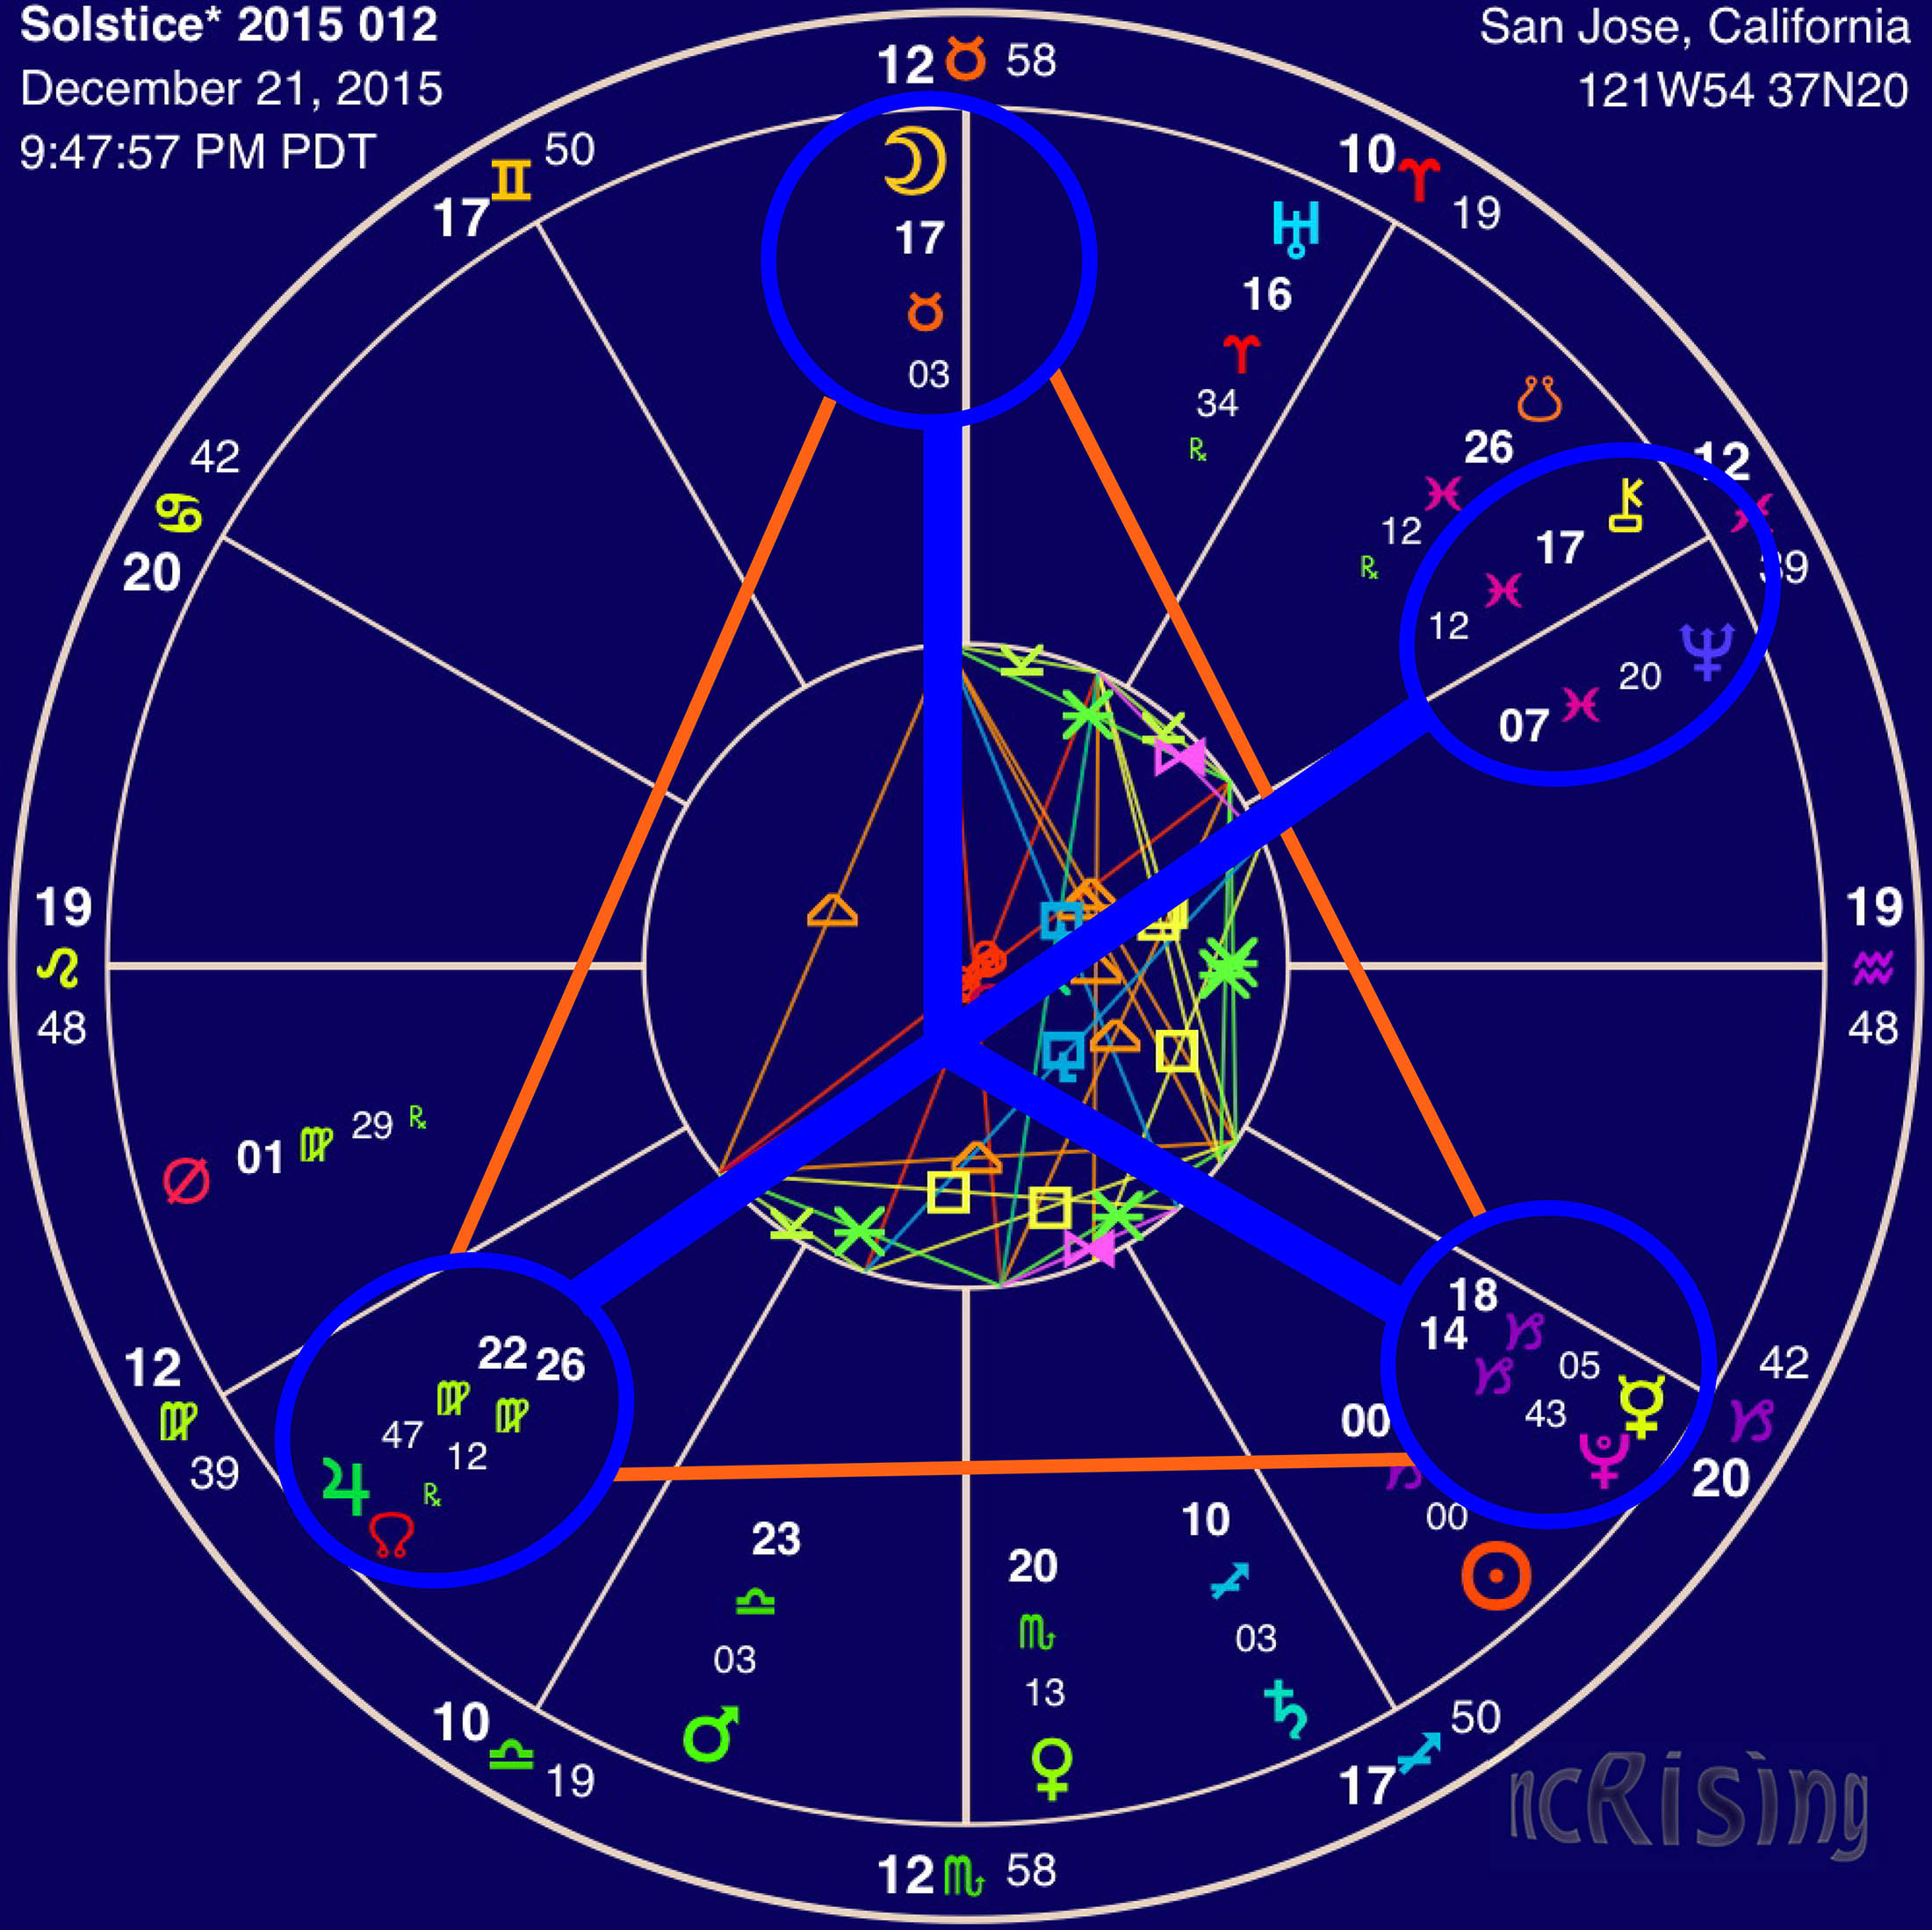 image of 2015 December Solstice chart with Peace Sign configuration